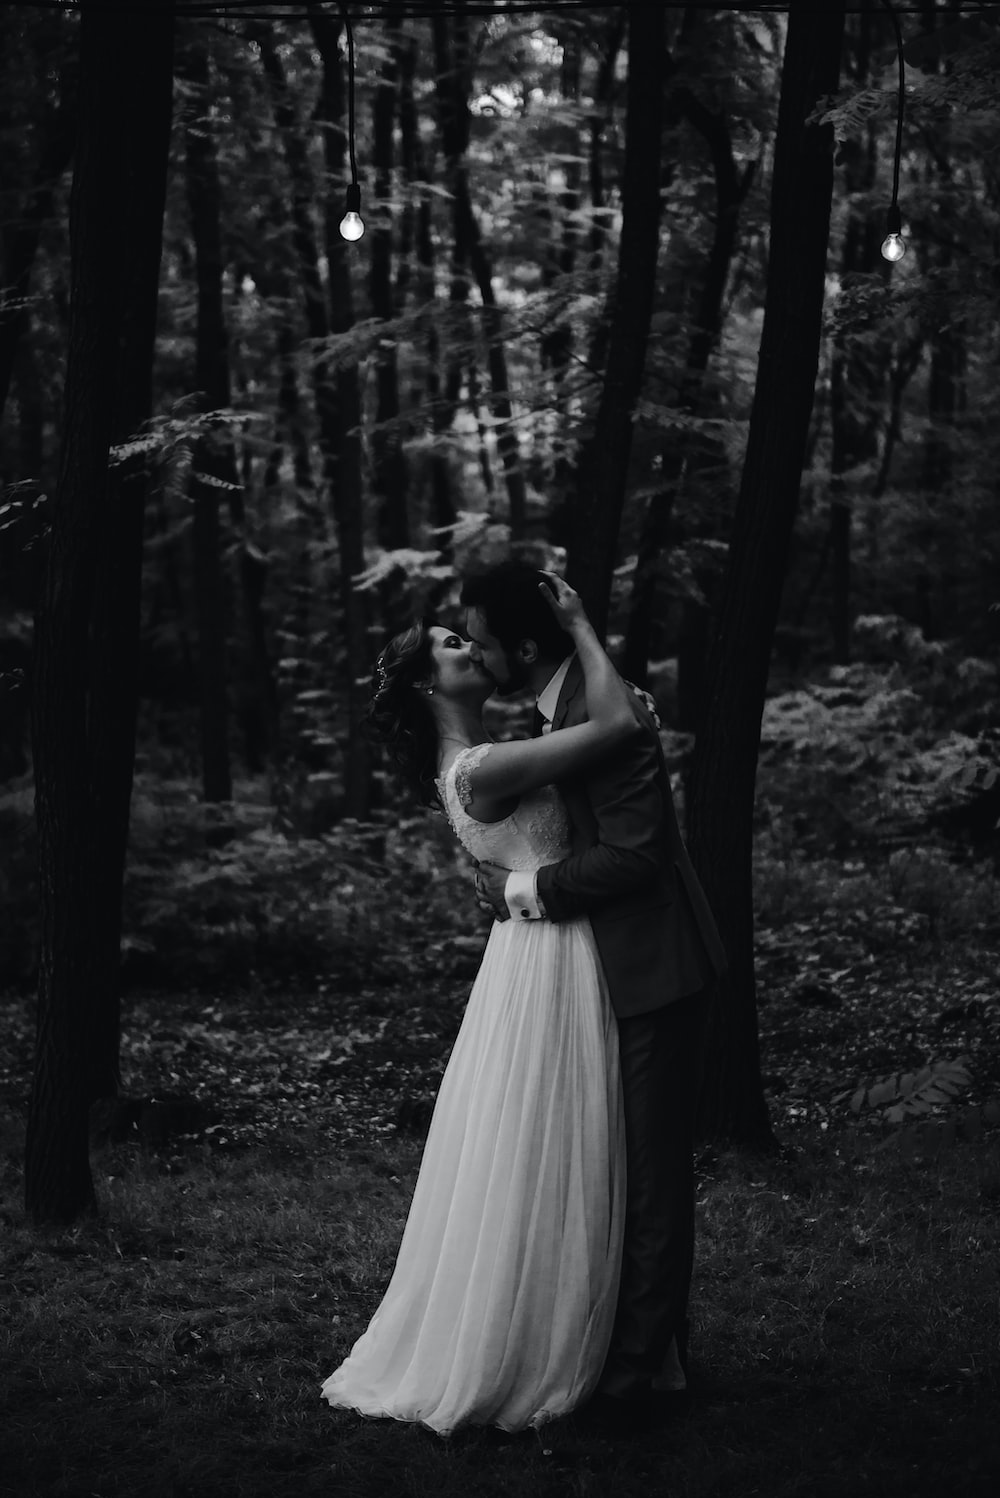 grayscale photo of couple kissing under forest trees